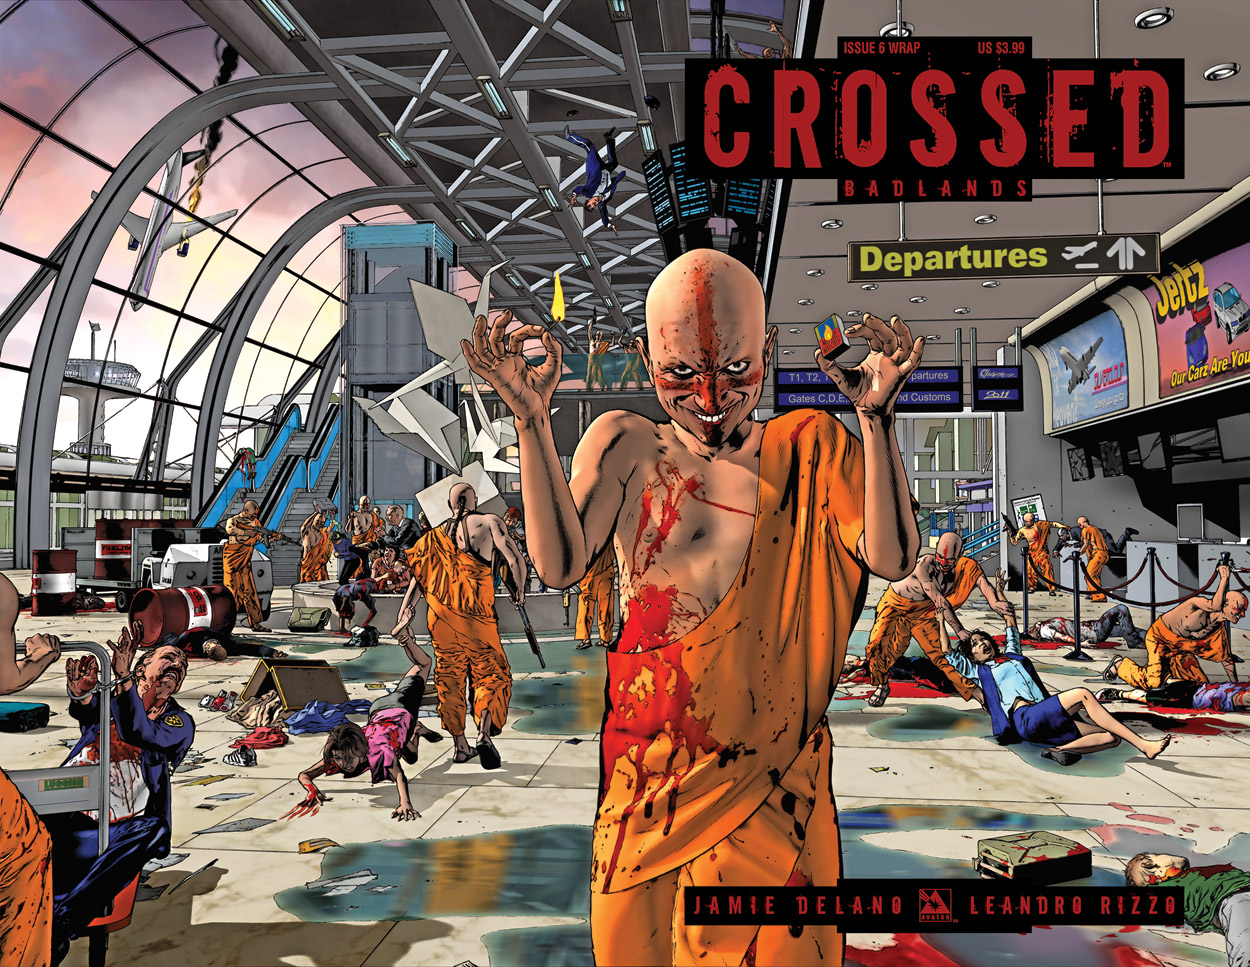 http://www.avatarpress.com/wp-content/uploads/2012/05/Crossed-Badlands-6-Wraparound.jpg